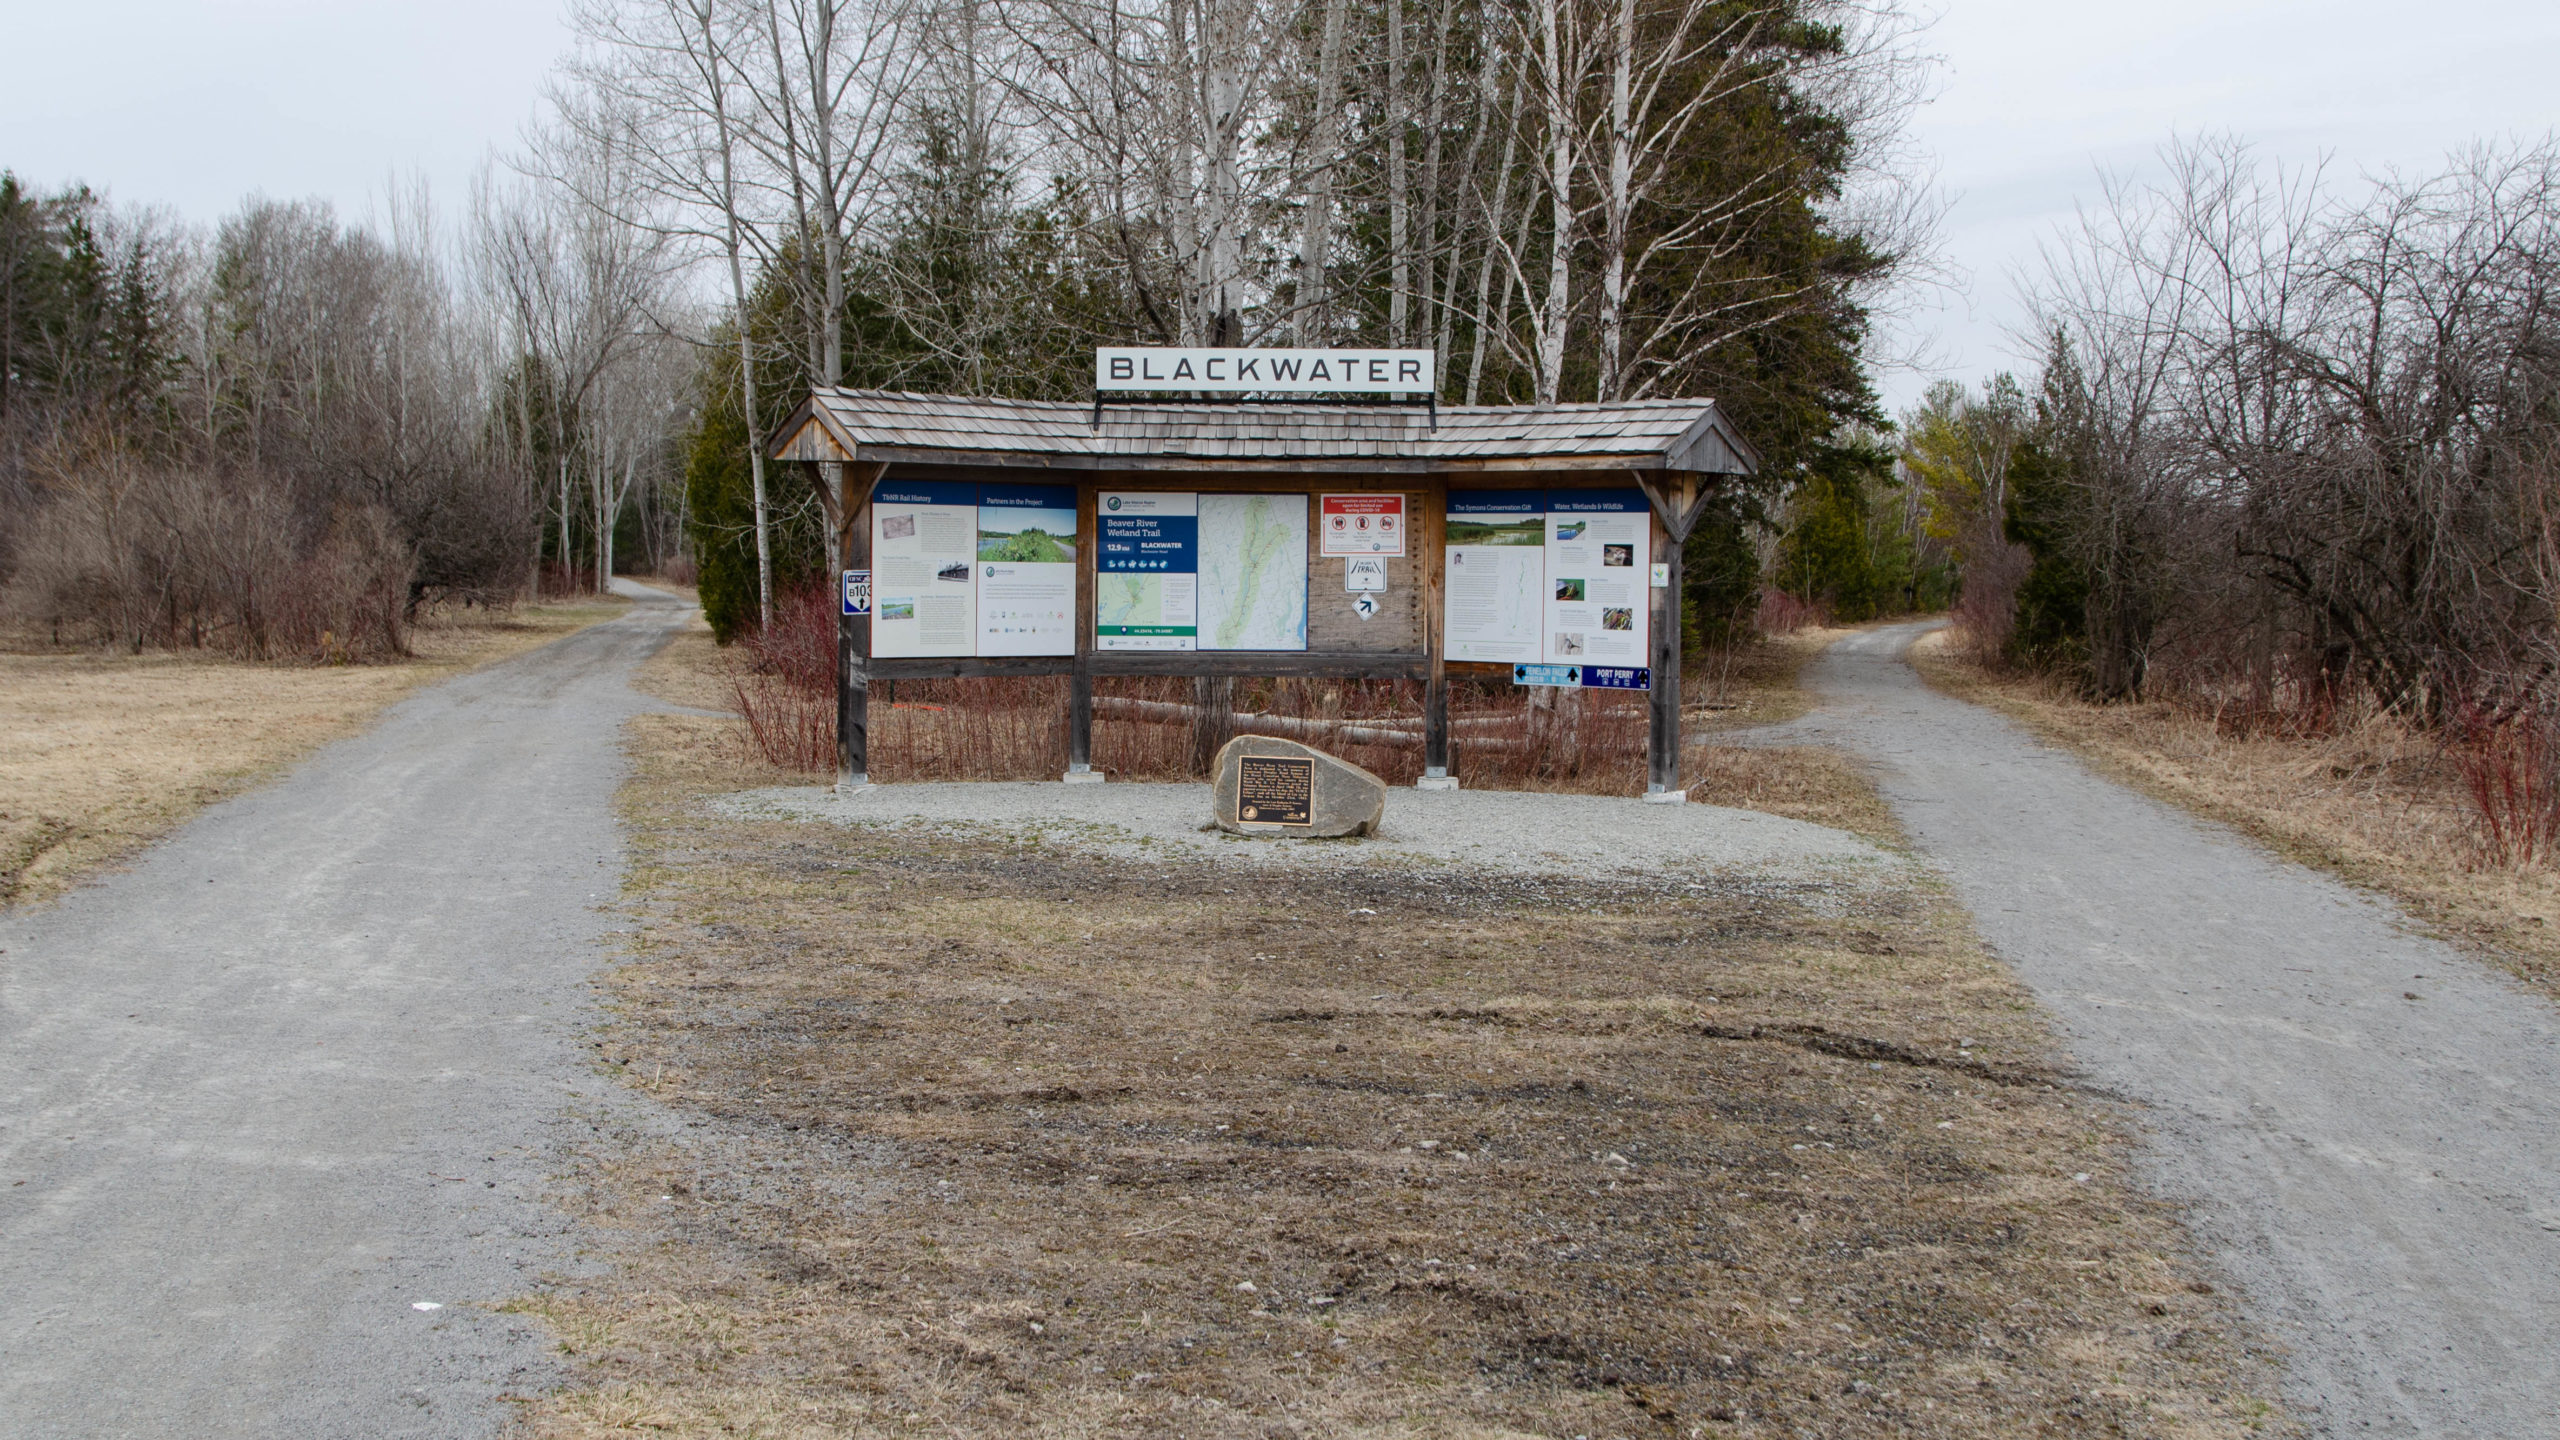 A picture of the map sign where the Trans Canada Trail splits in Blackwater.